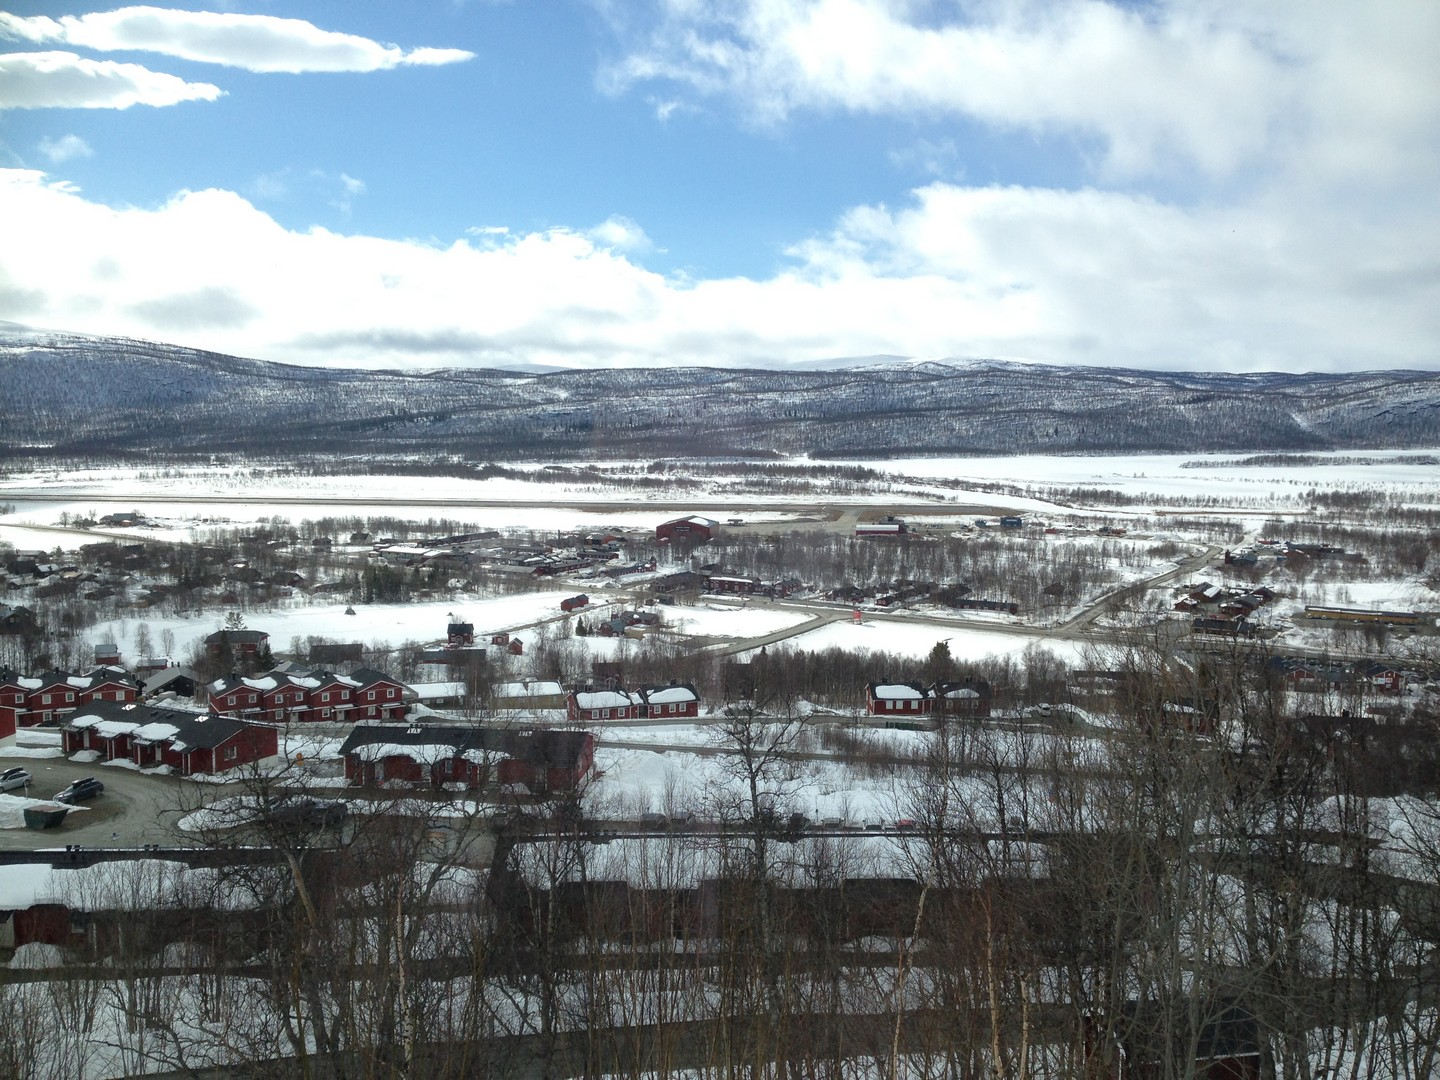 HEMAVAN, SWEDEN: SKI TRIP IN THE SNOWY NORTH